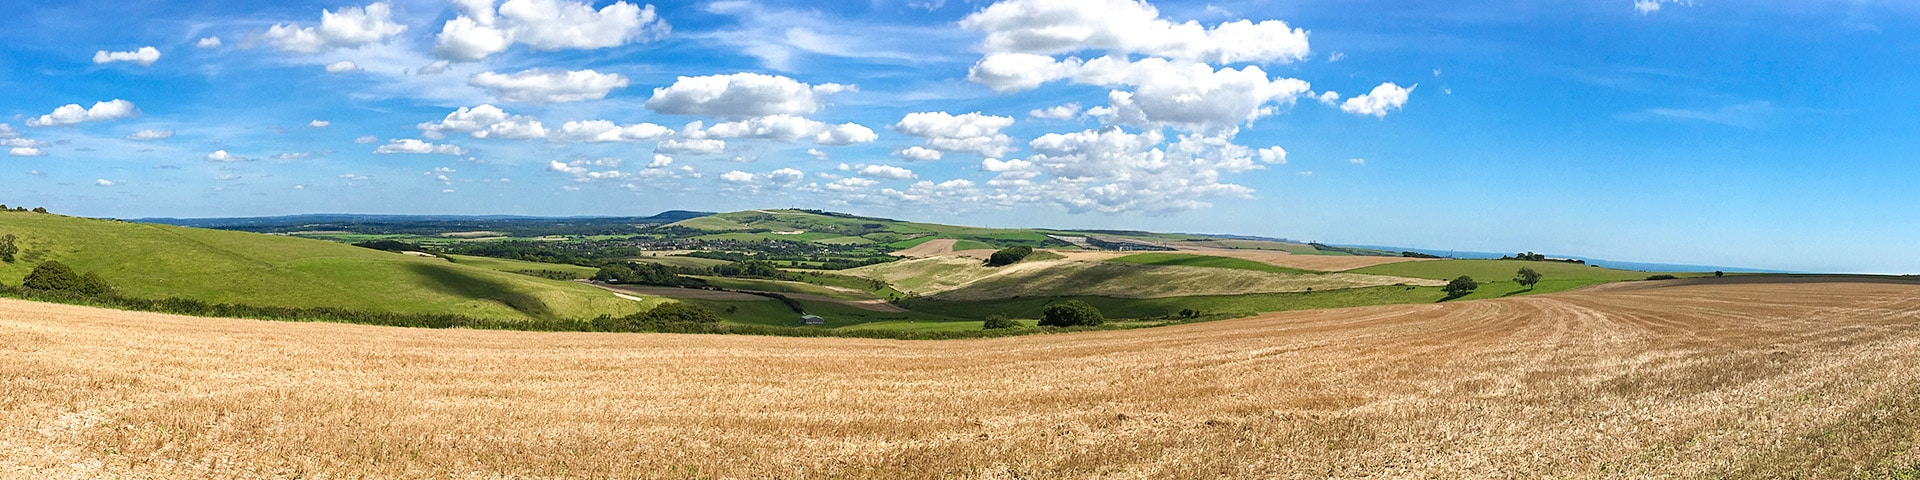 Panorama of the Amberley to Shoreham-by-Sea walk in South Downs, England